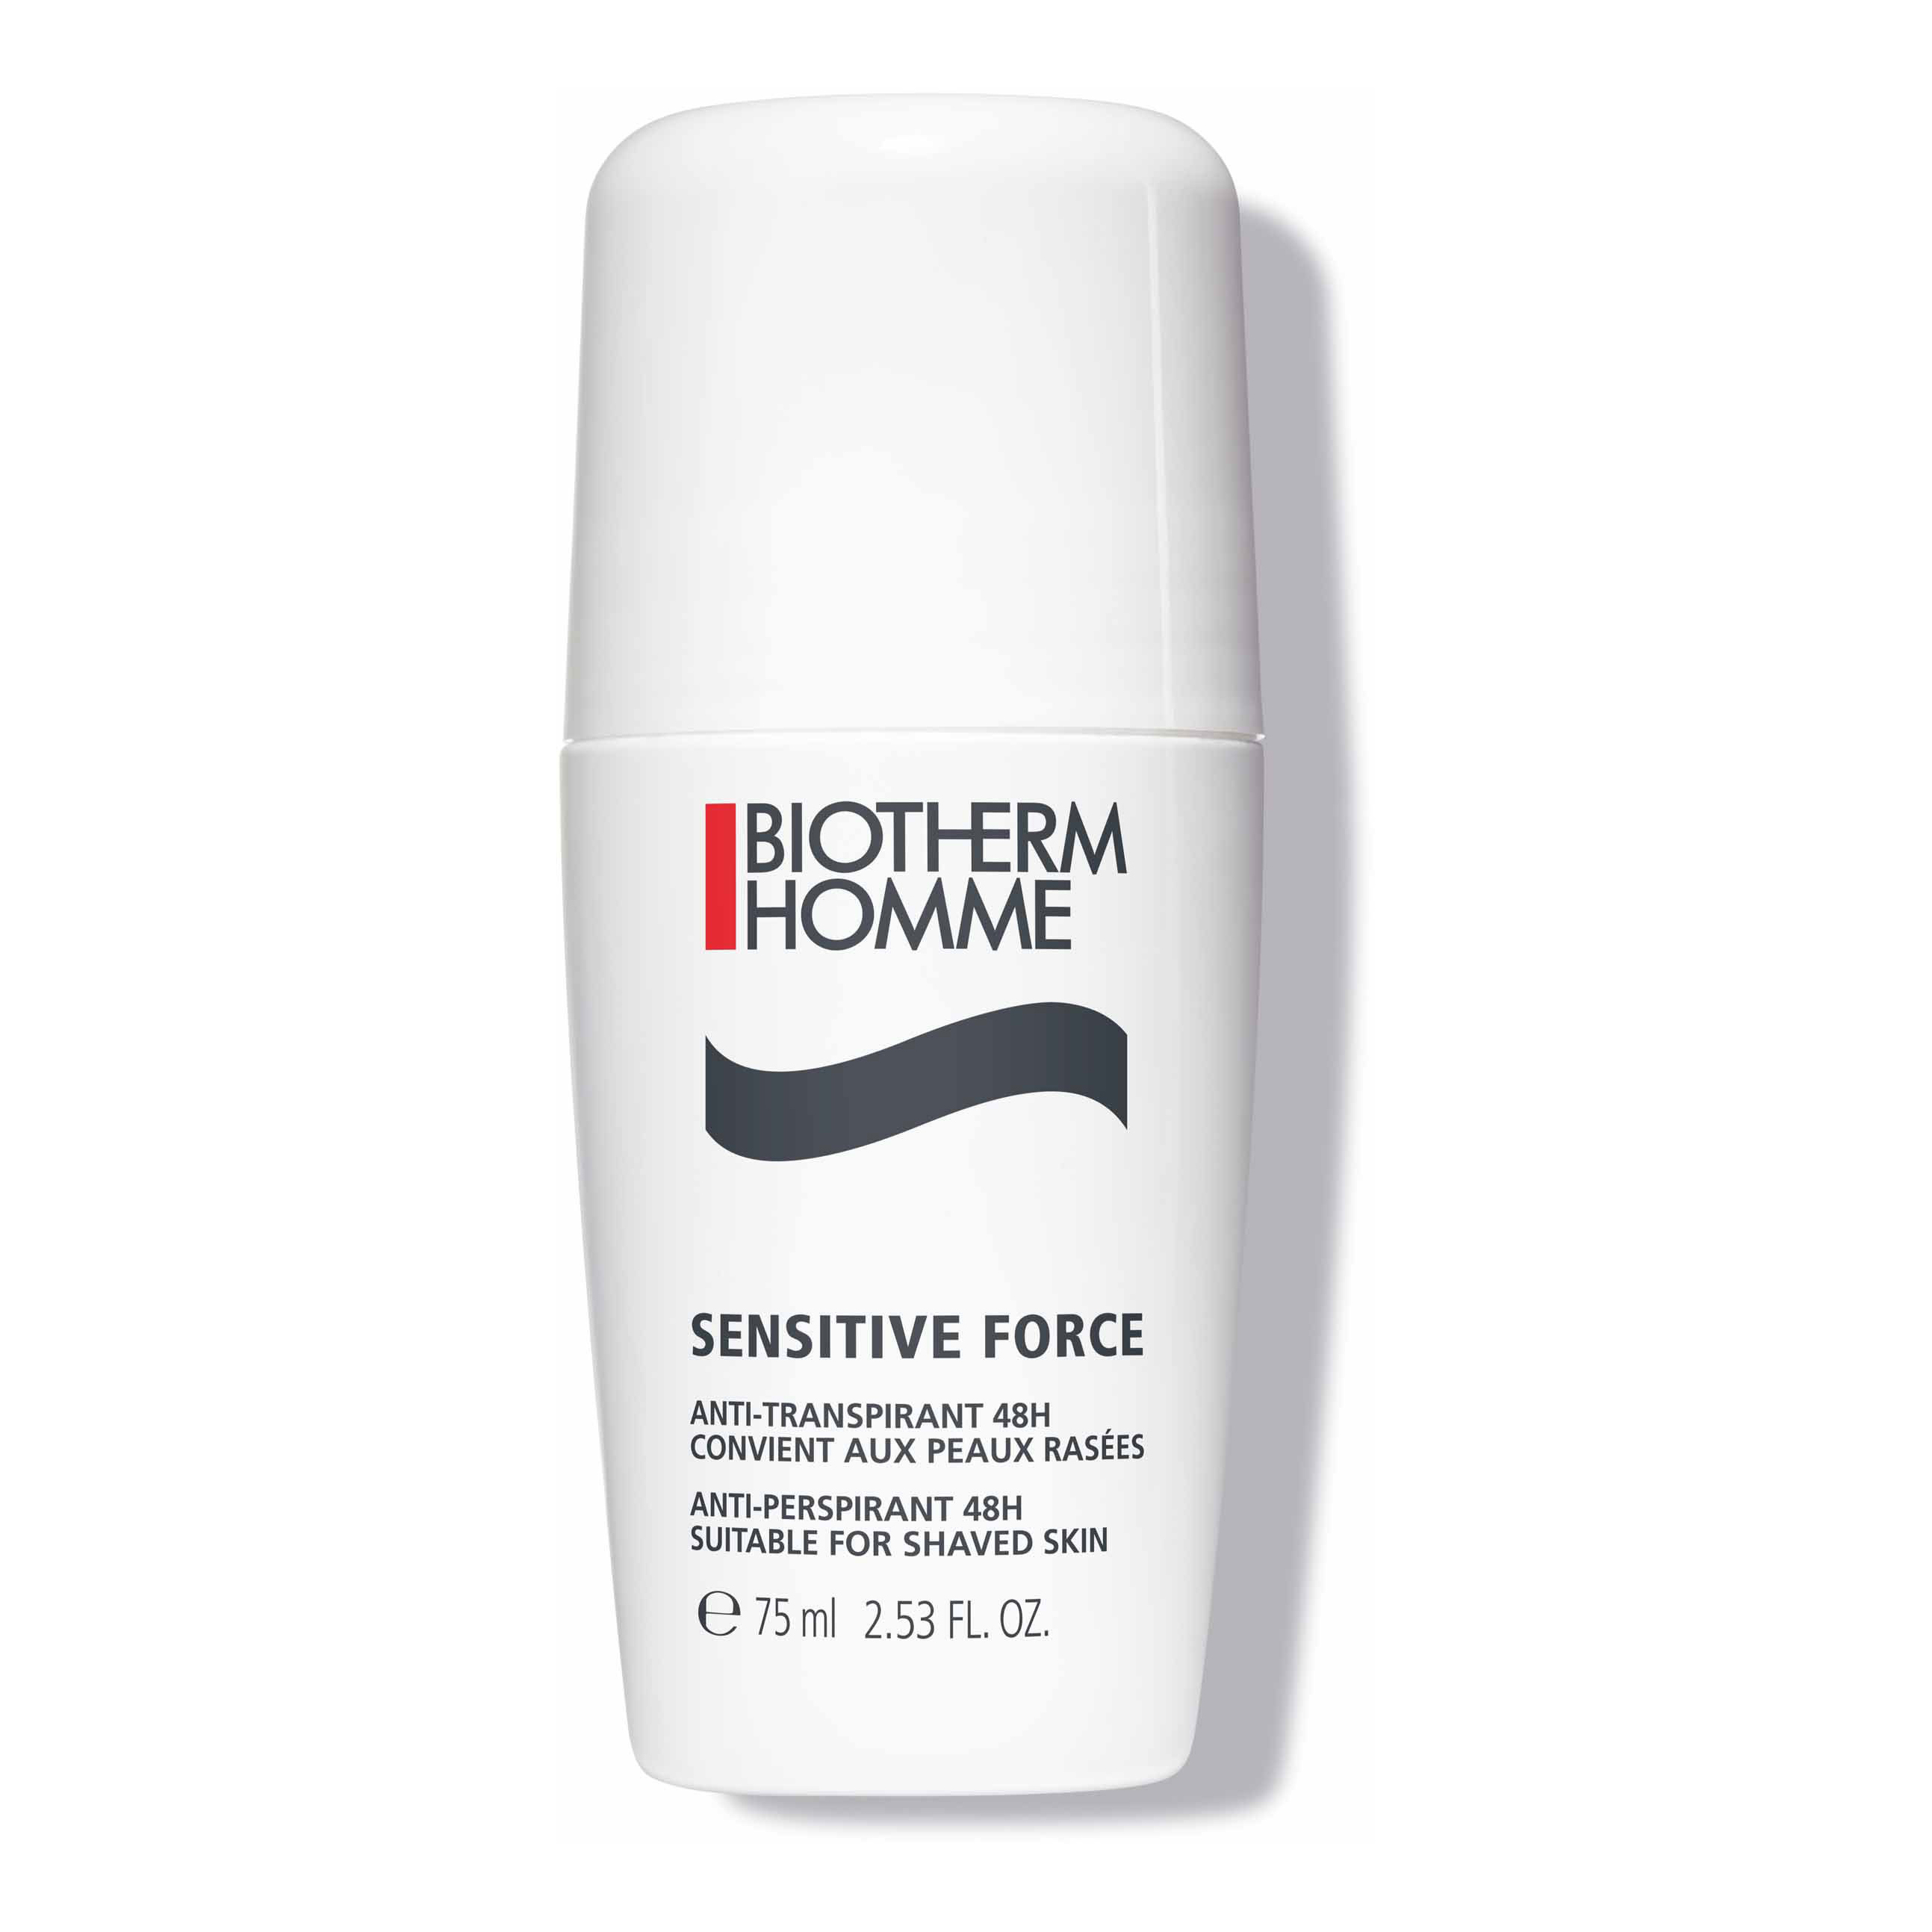 Sensitive Force. BIOTHERM HOMME Desodorante 48h 75ml